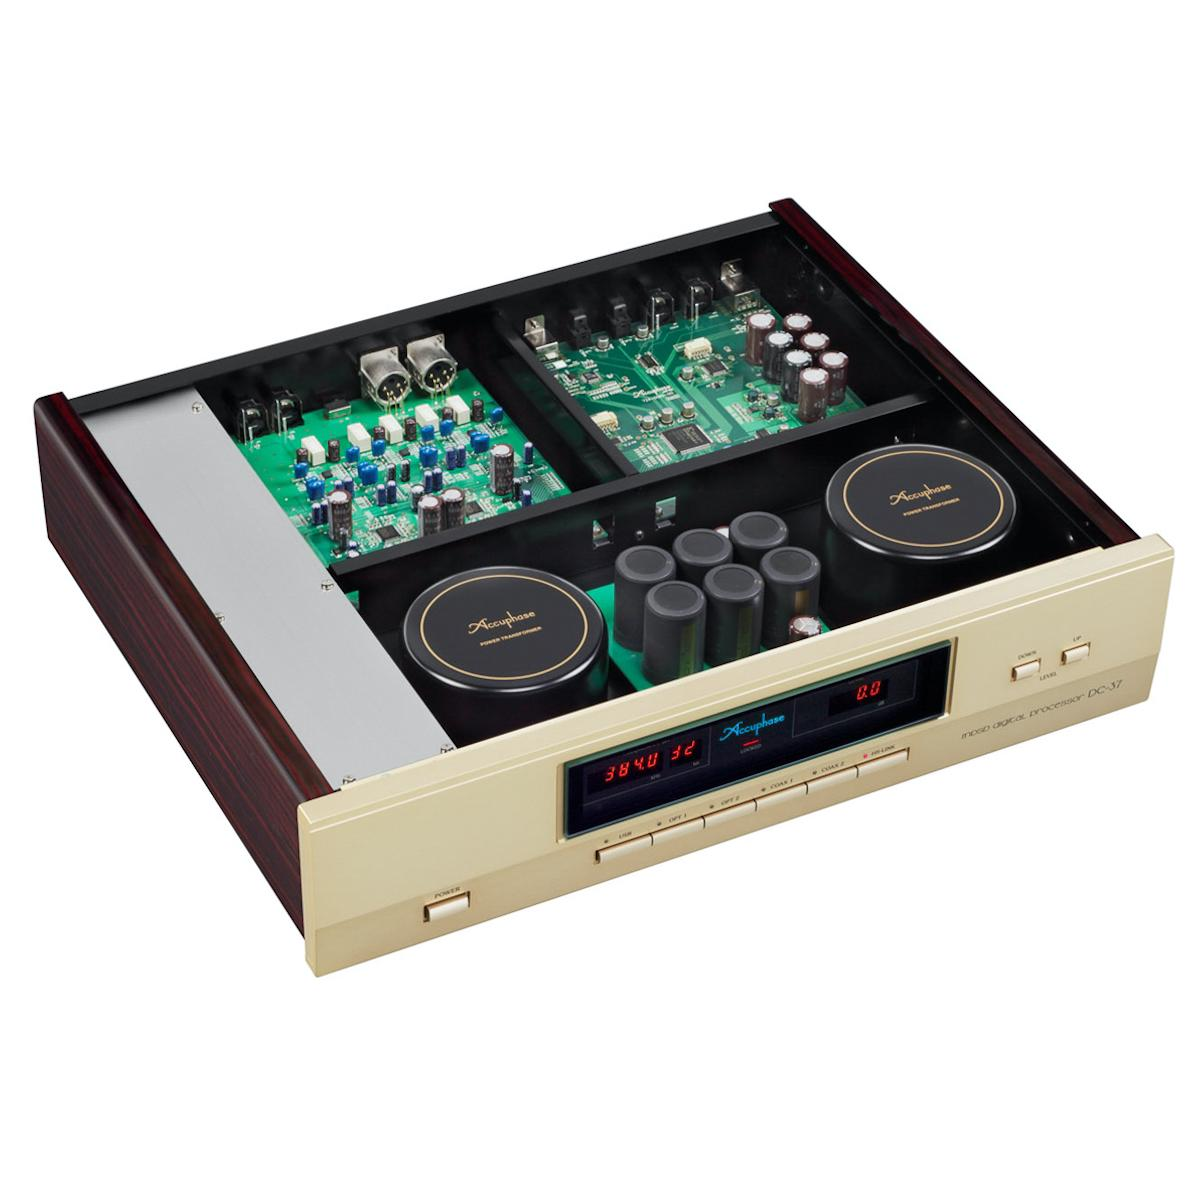 Accuphase DC-37 - MDSD Digital Processor, Accuphase Laboratory, Inc., Digital Signal Processor - AVStore.in